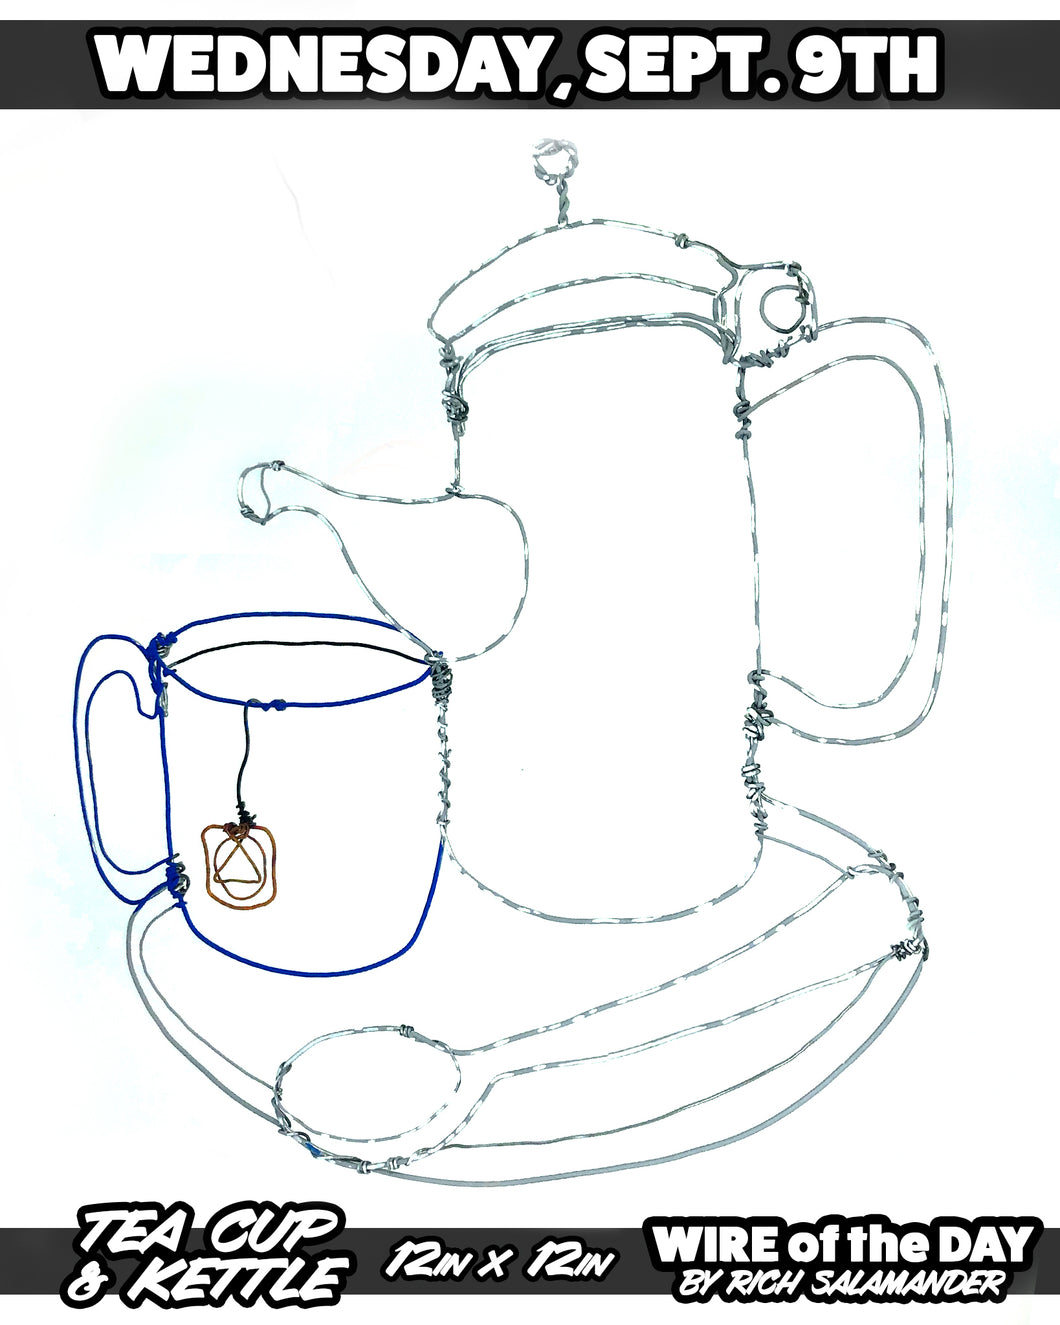 WIRE of the DAY TEA CUP & KETTLE